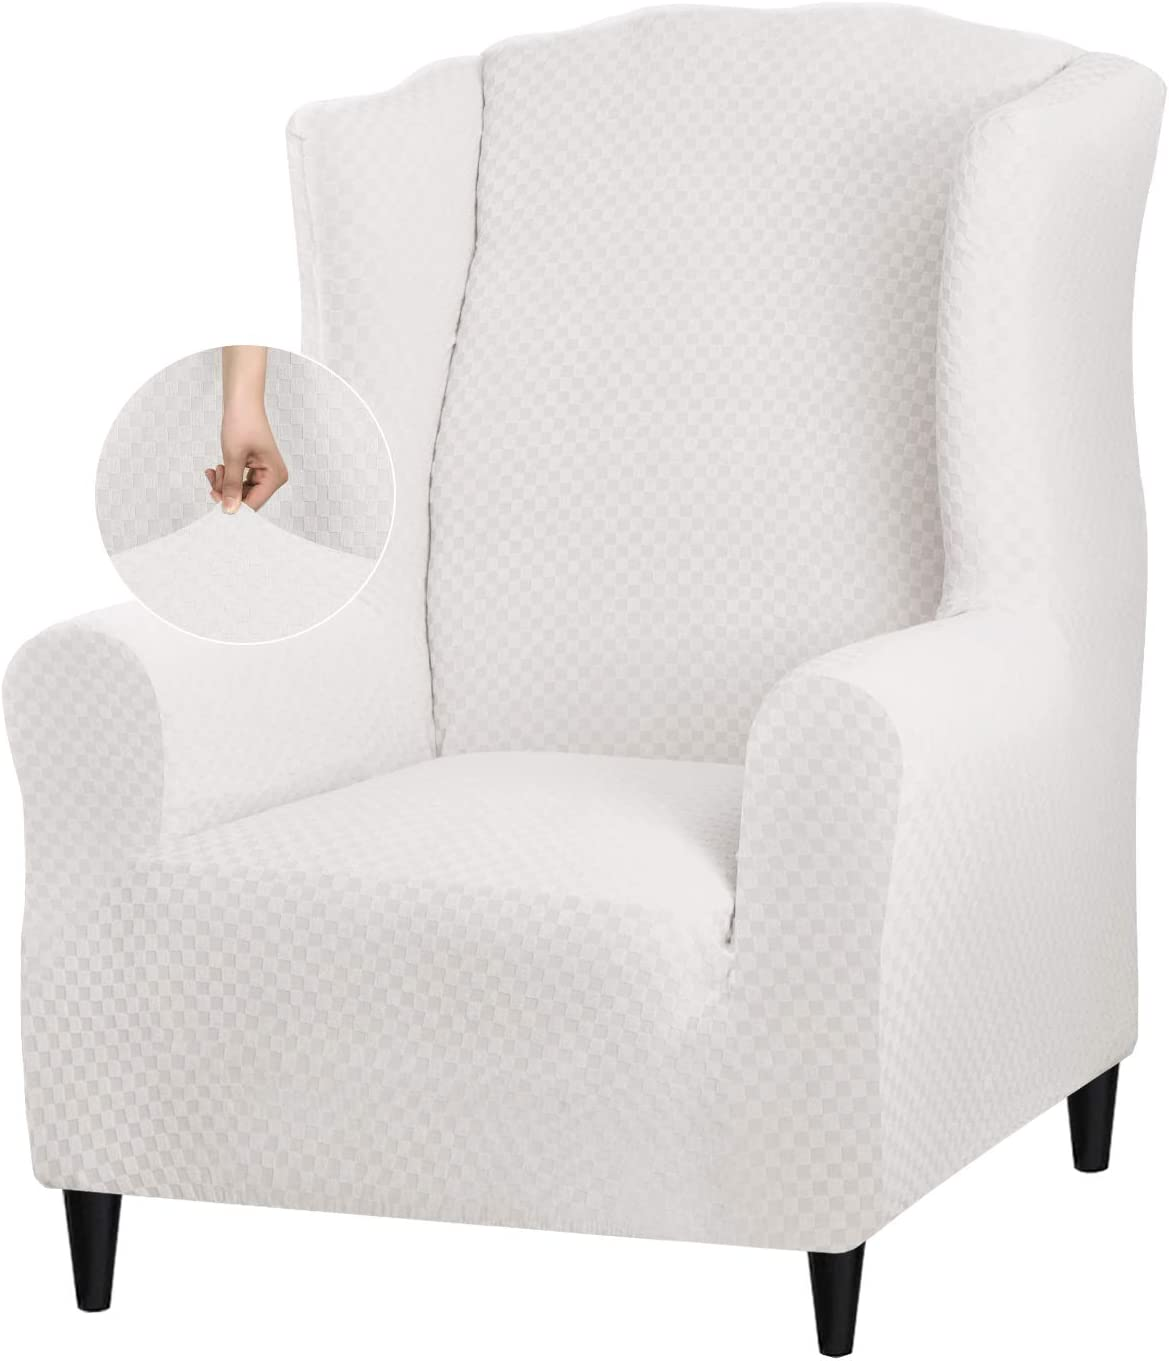 YEMYHOM 1 Piece Stretch Wingback Chair Slipcover Latest Jacquard Design Wing Chair Cover Non Slip Furniture Protector with Foam Rods for Living Room (Wing Chair, White)